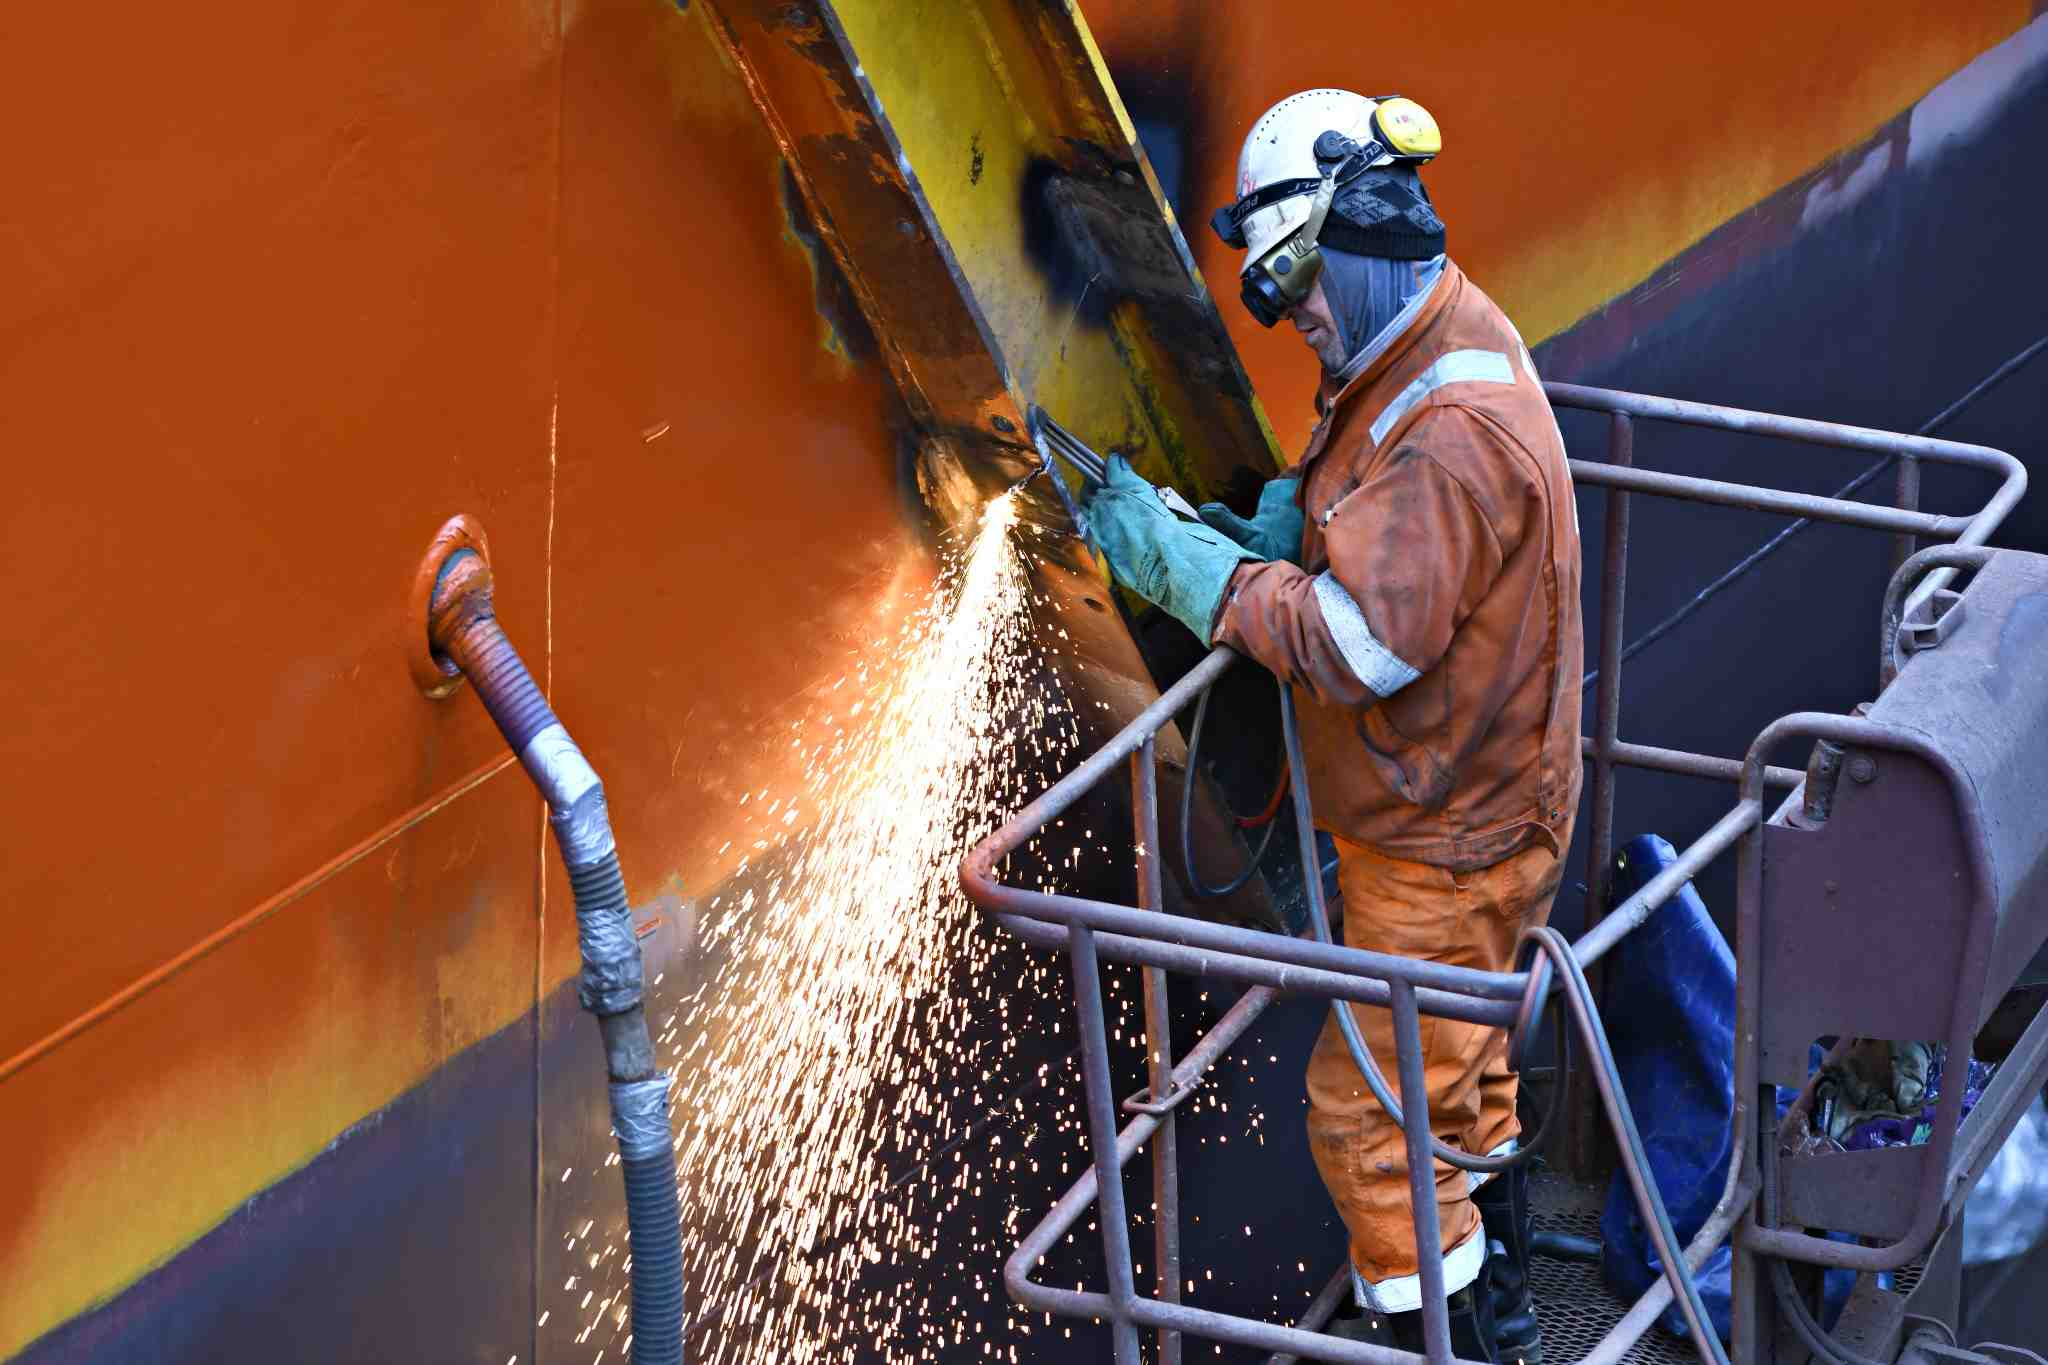 What is the most important criteria for selecting shipyard